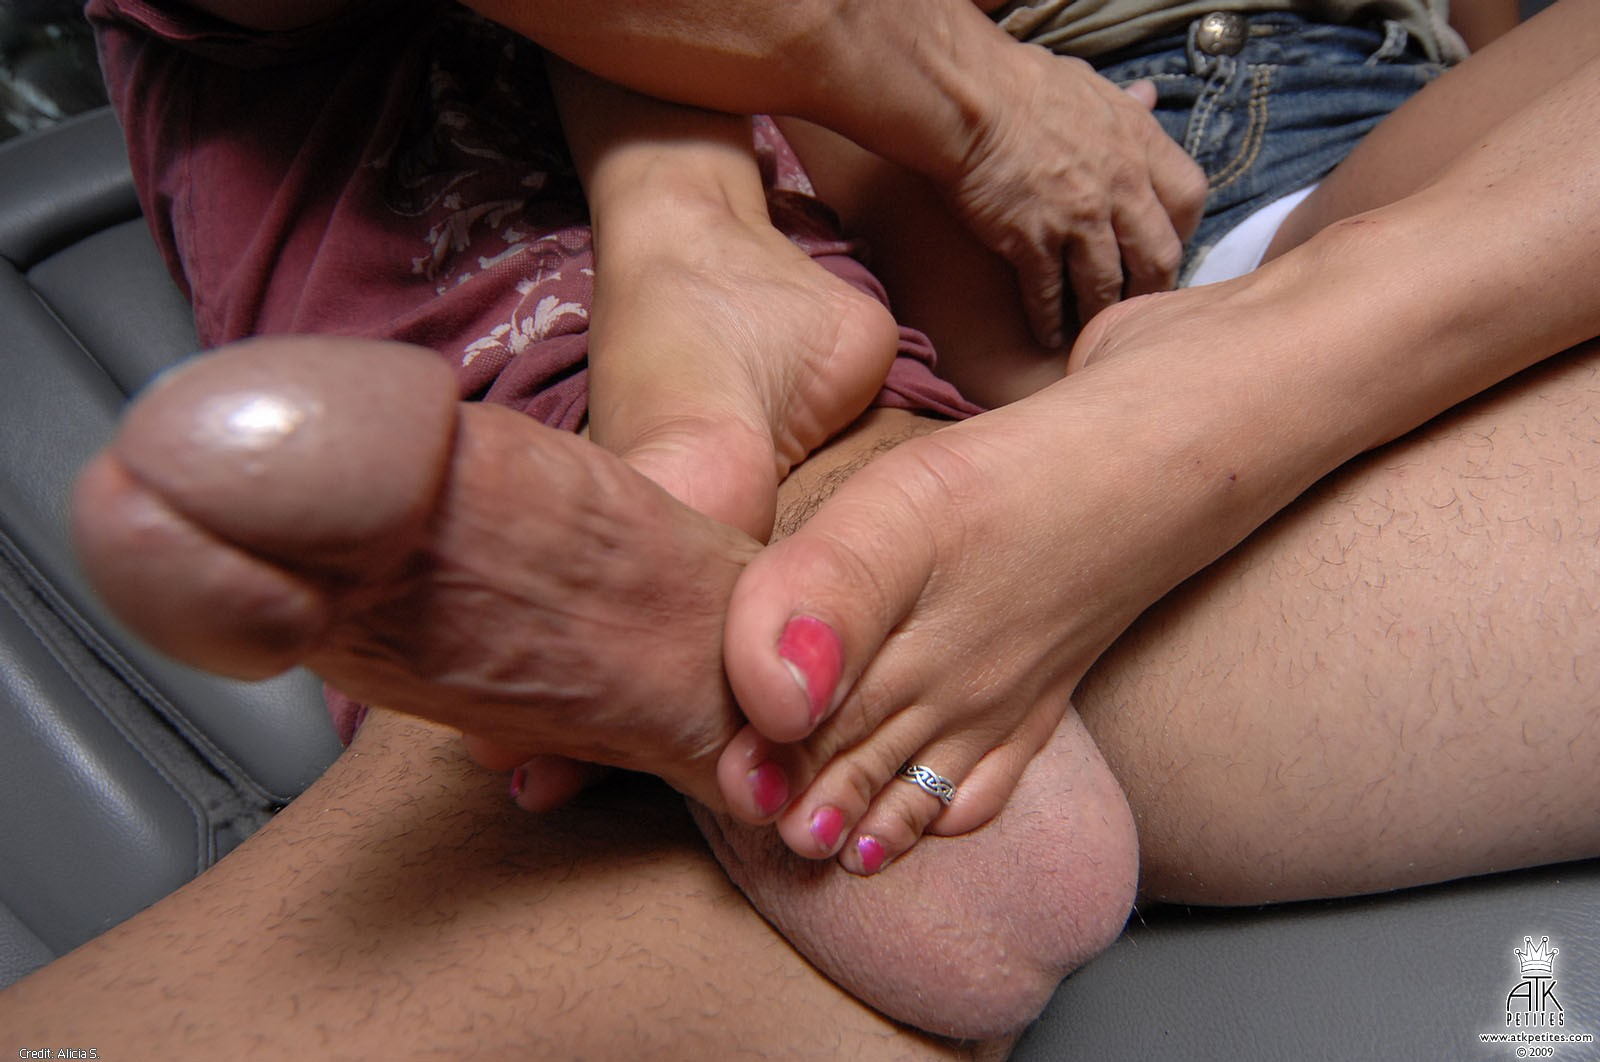 Her hand brushed his hard cock consider